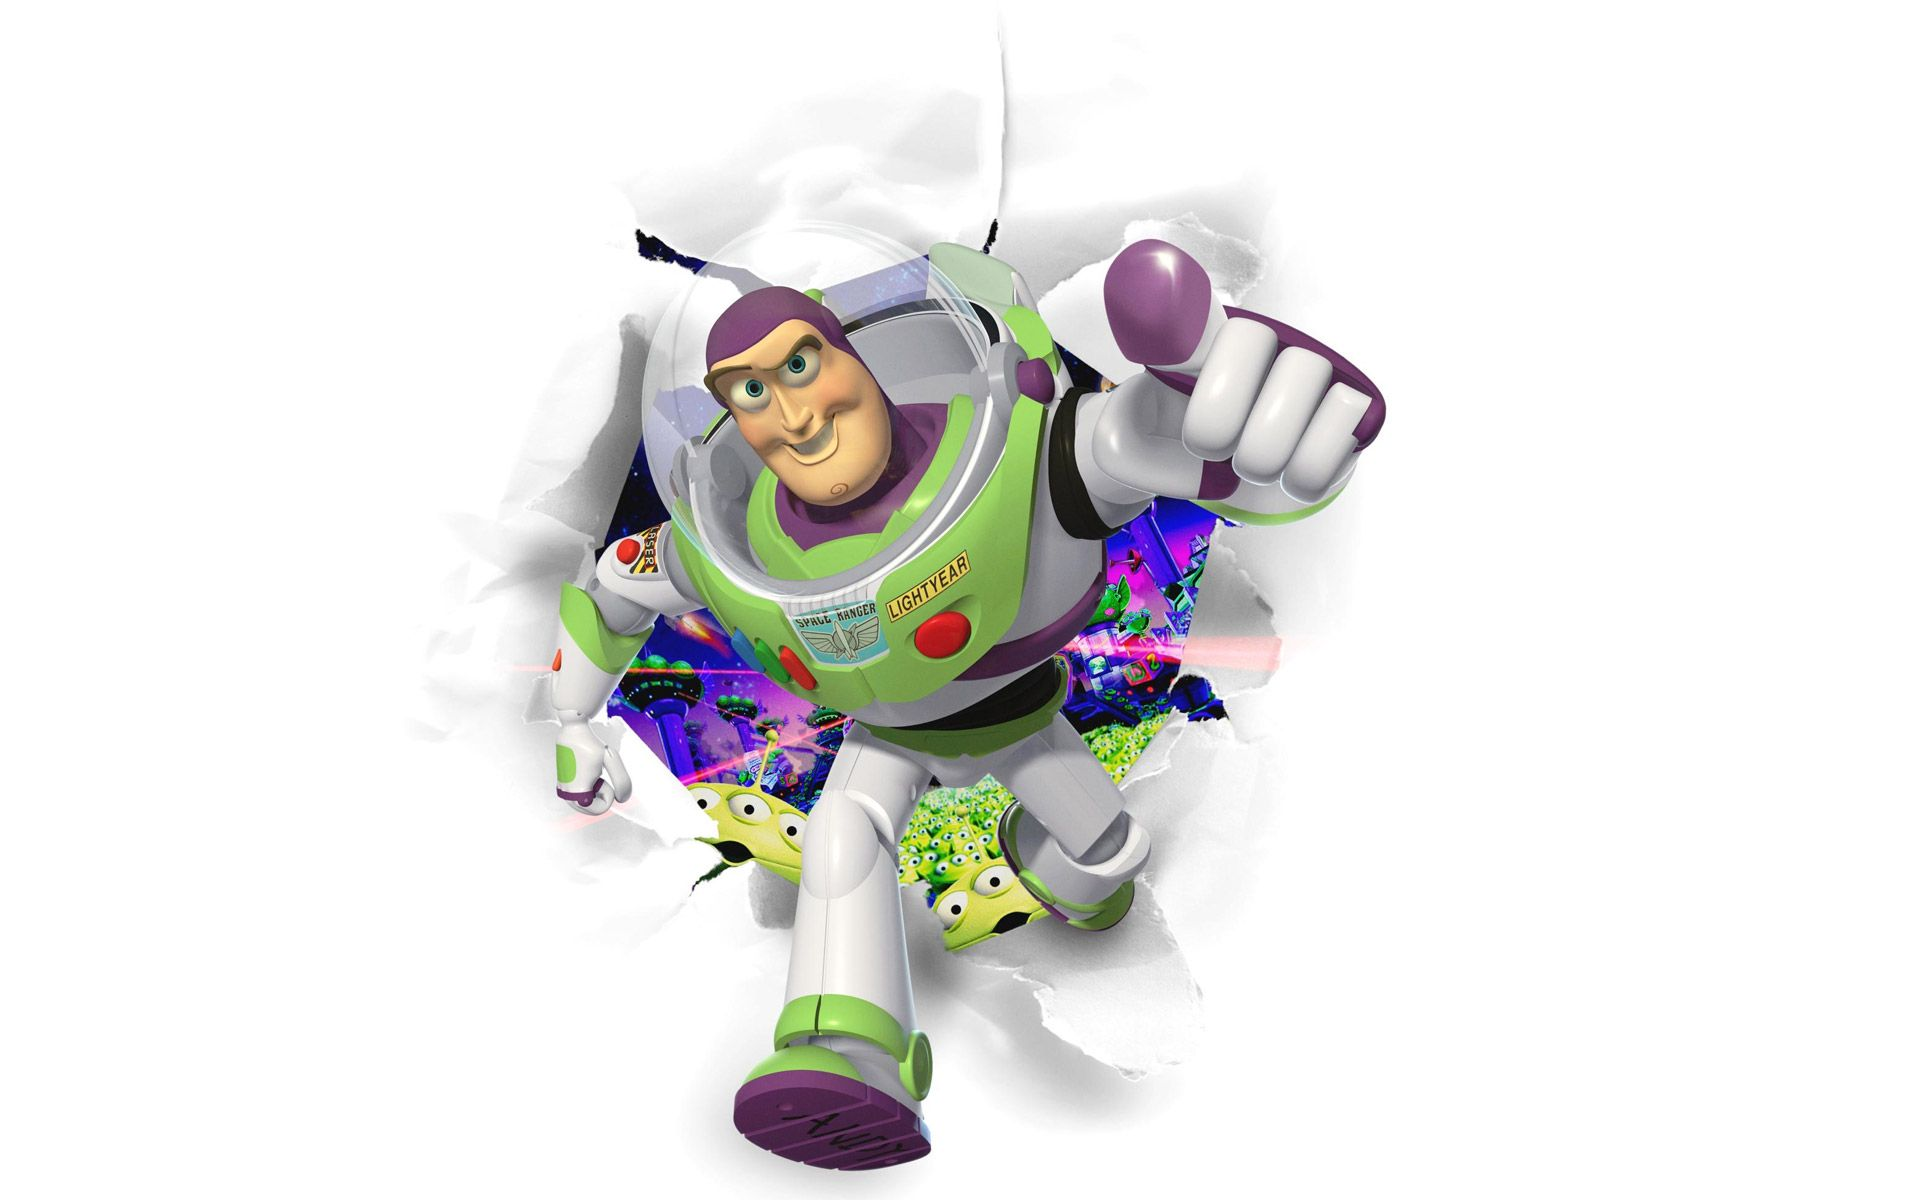 Toy Story Buzz Lightyear Wallpaper 1920 Toy Story Pixar Pelicula Toy Story